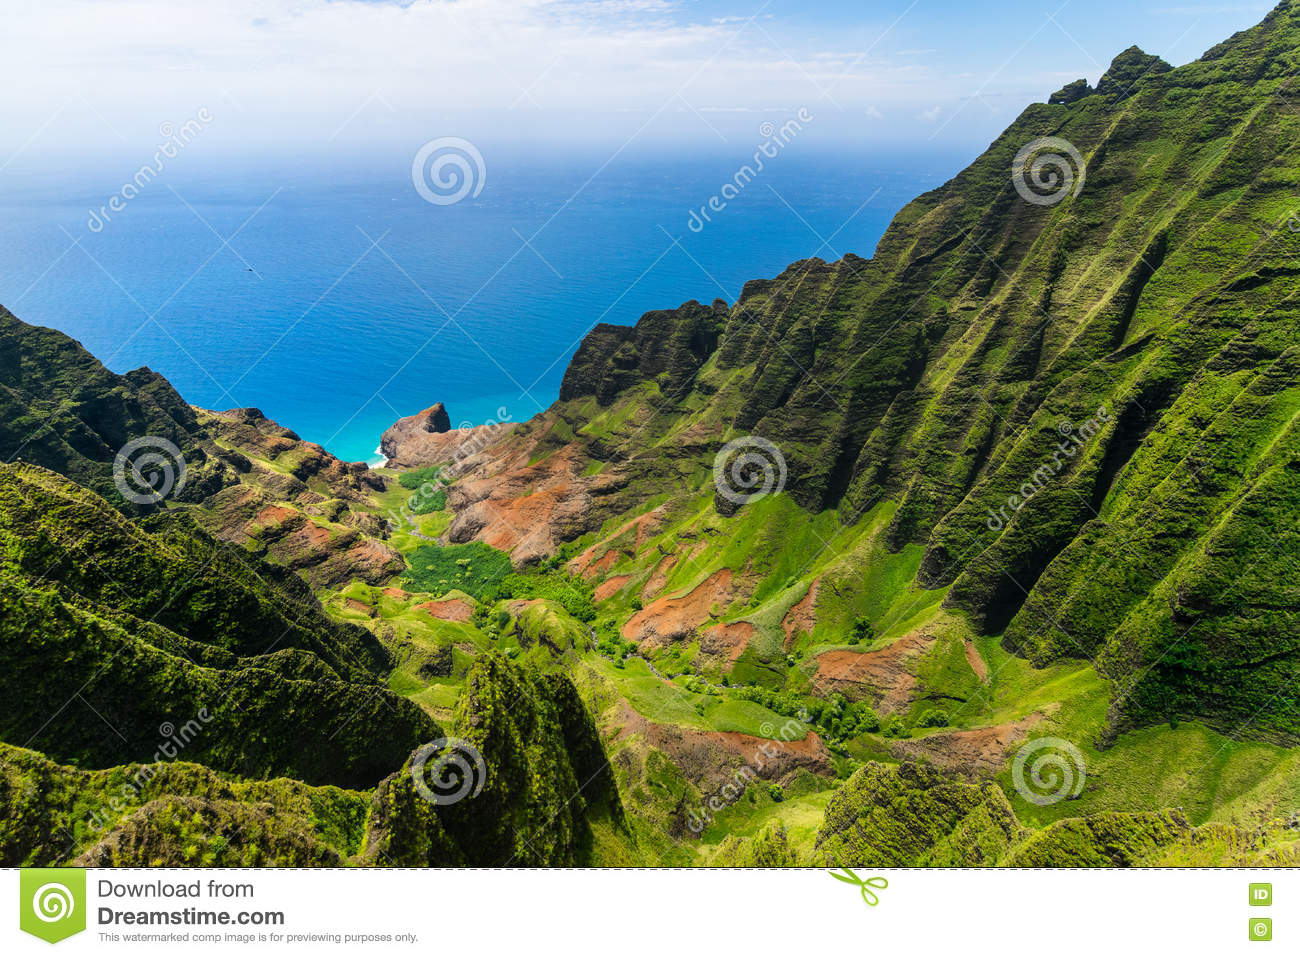 Aerial landscape view of cliffs and green valley, Kauai